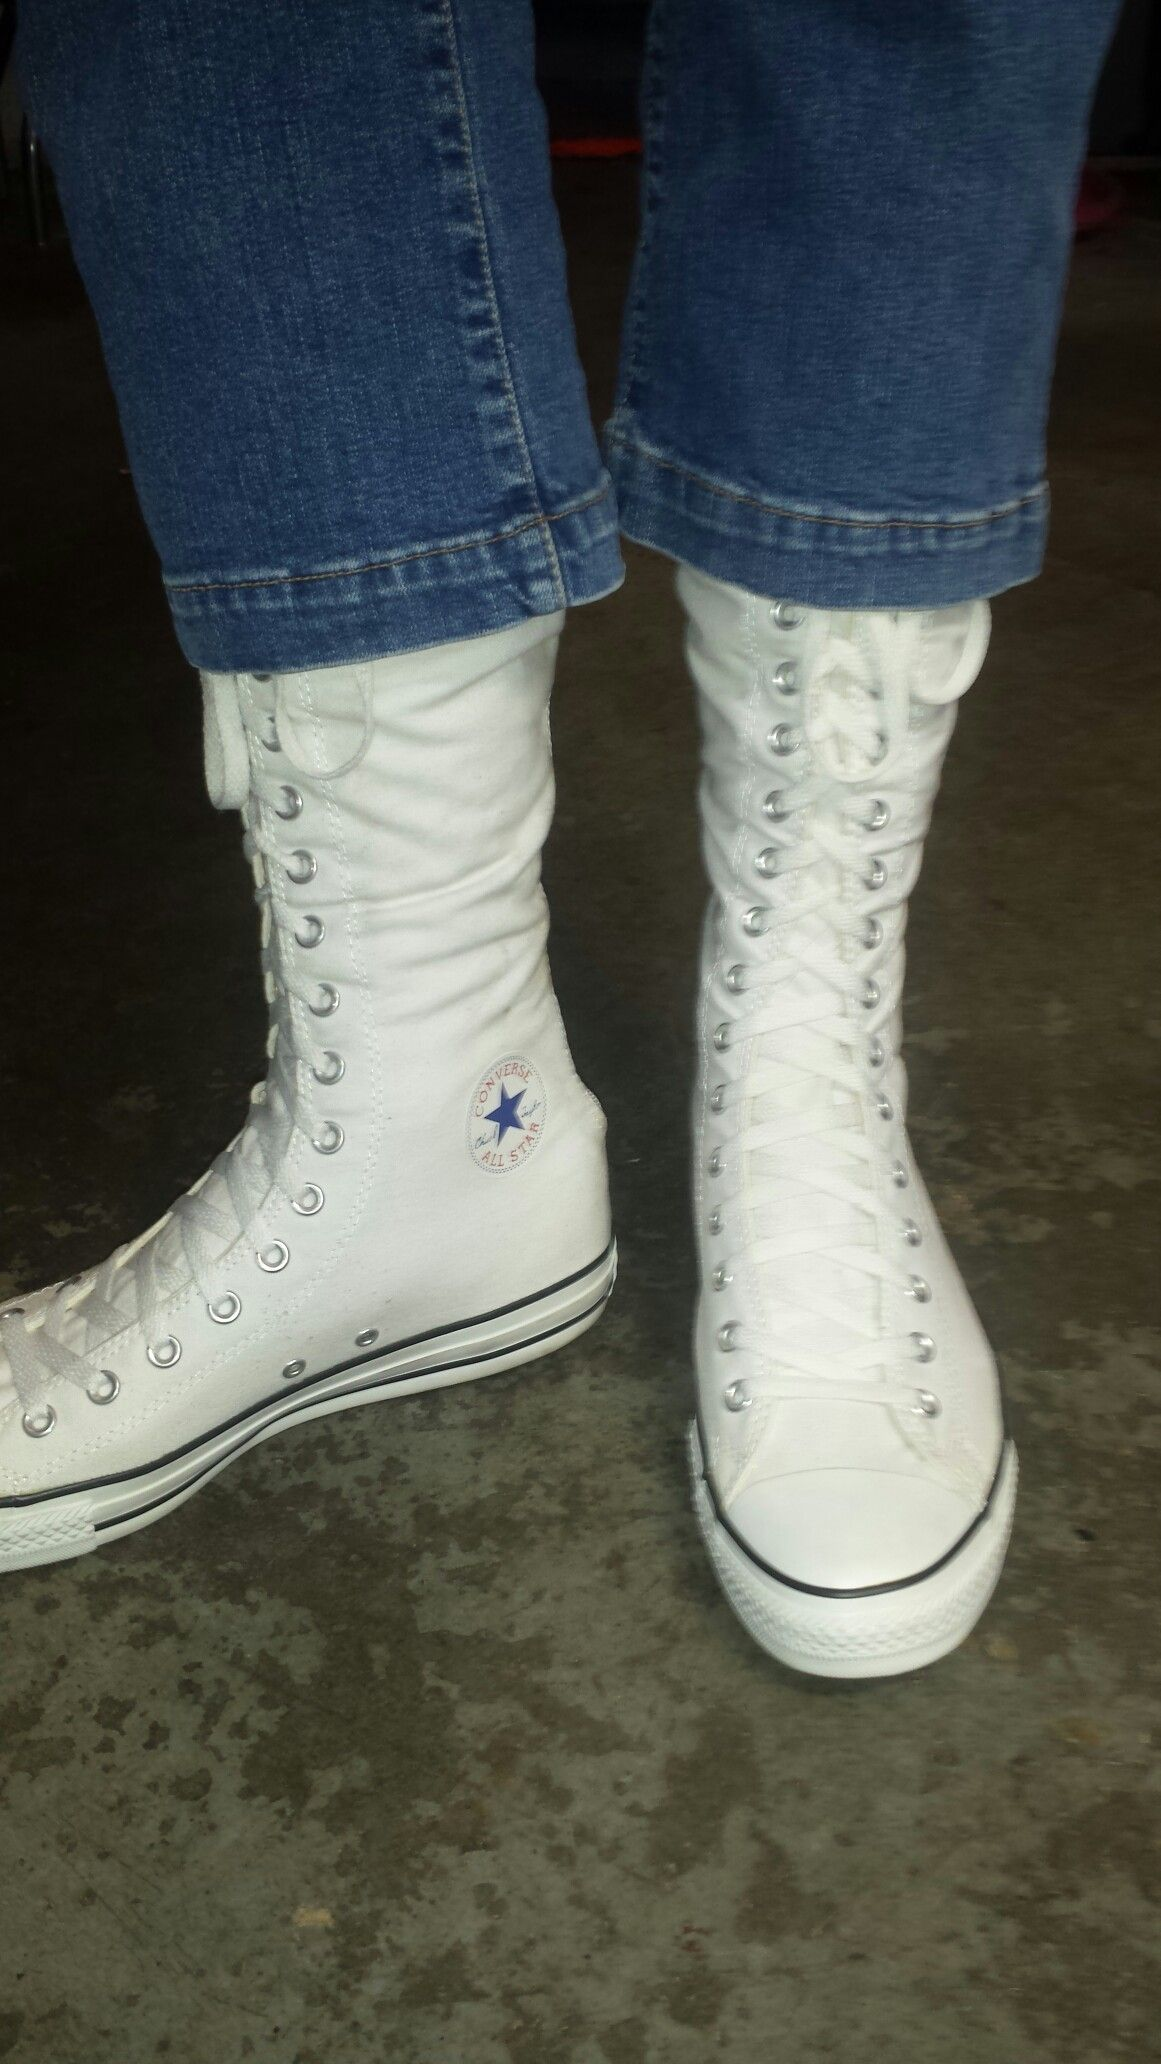 Capri jeans and XXHI Converse. Find this Pin and more on My collection of knee  high ... c555c80fa